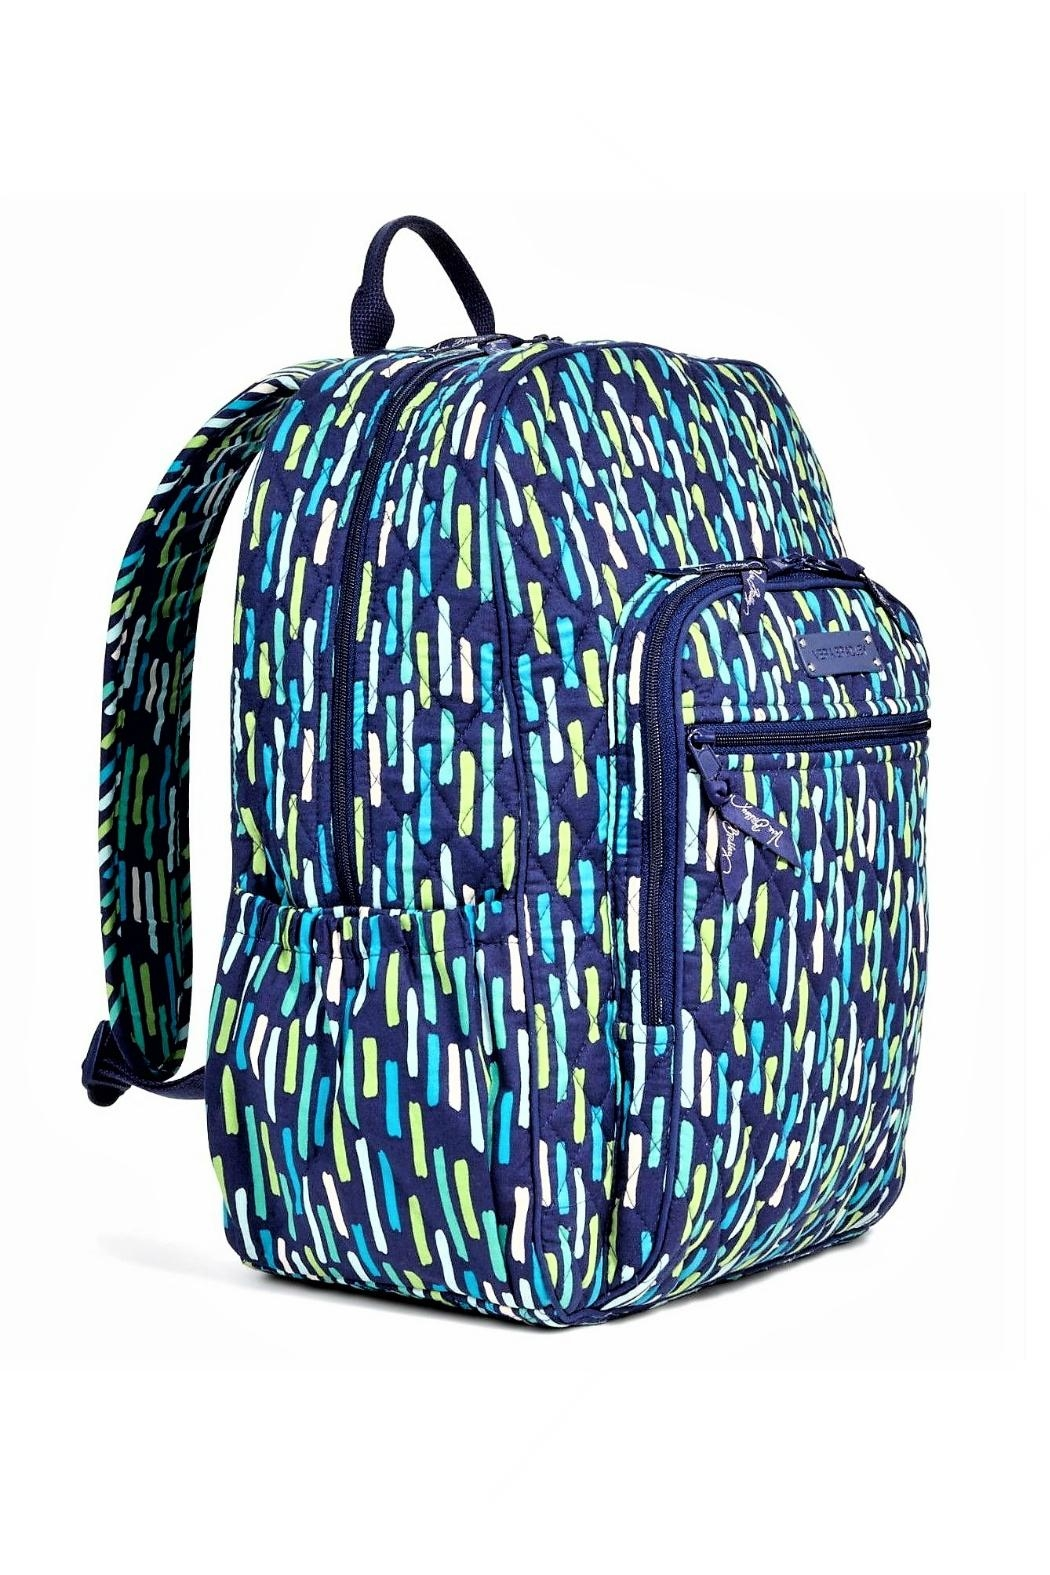 e0fcca3578 Vera Bradley Katalina Showers Campus Backpack from Kentucky by ...